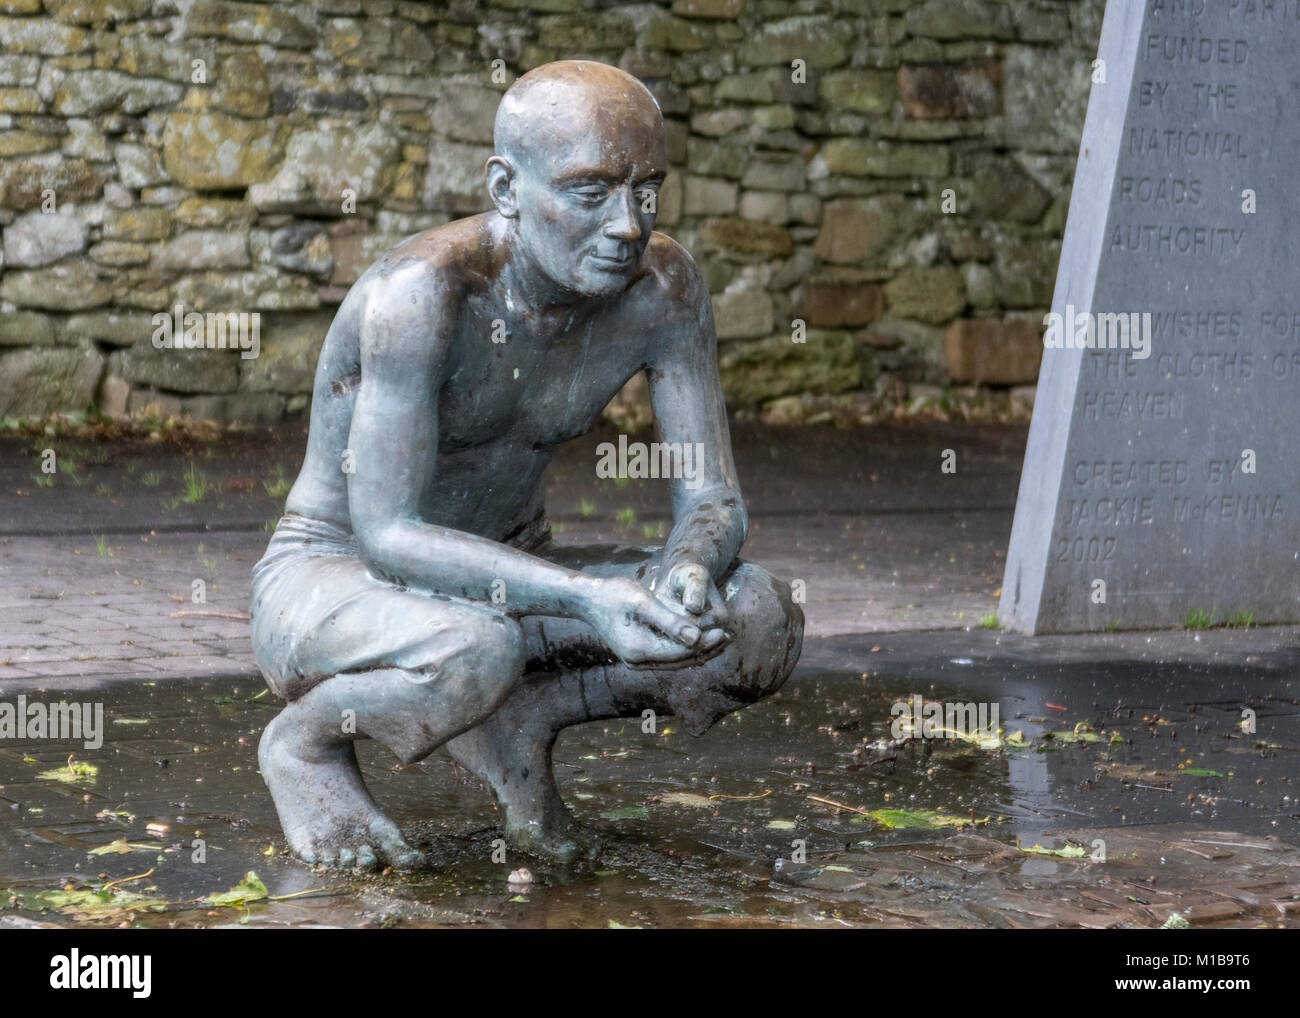 'He Wishes for the Cloths of Heaven'  William Butler Yeats poem memorialized the sculpture Jackie McKenna. - Stock Image